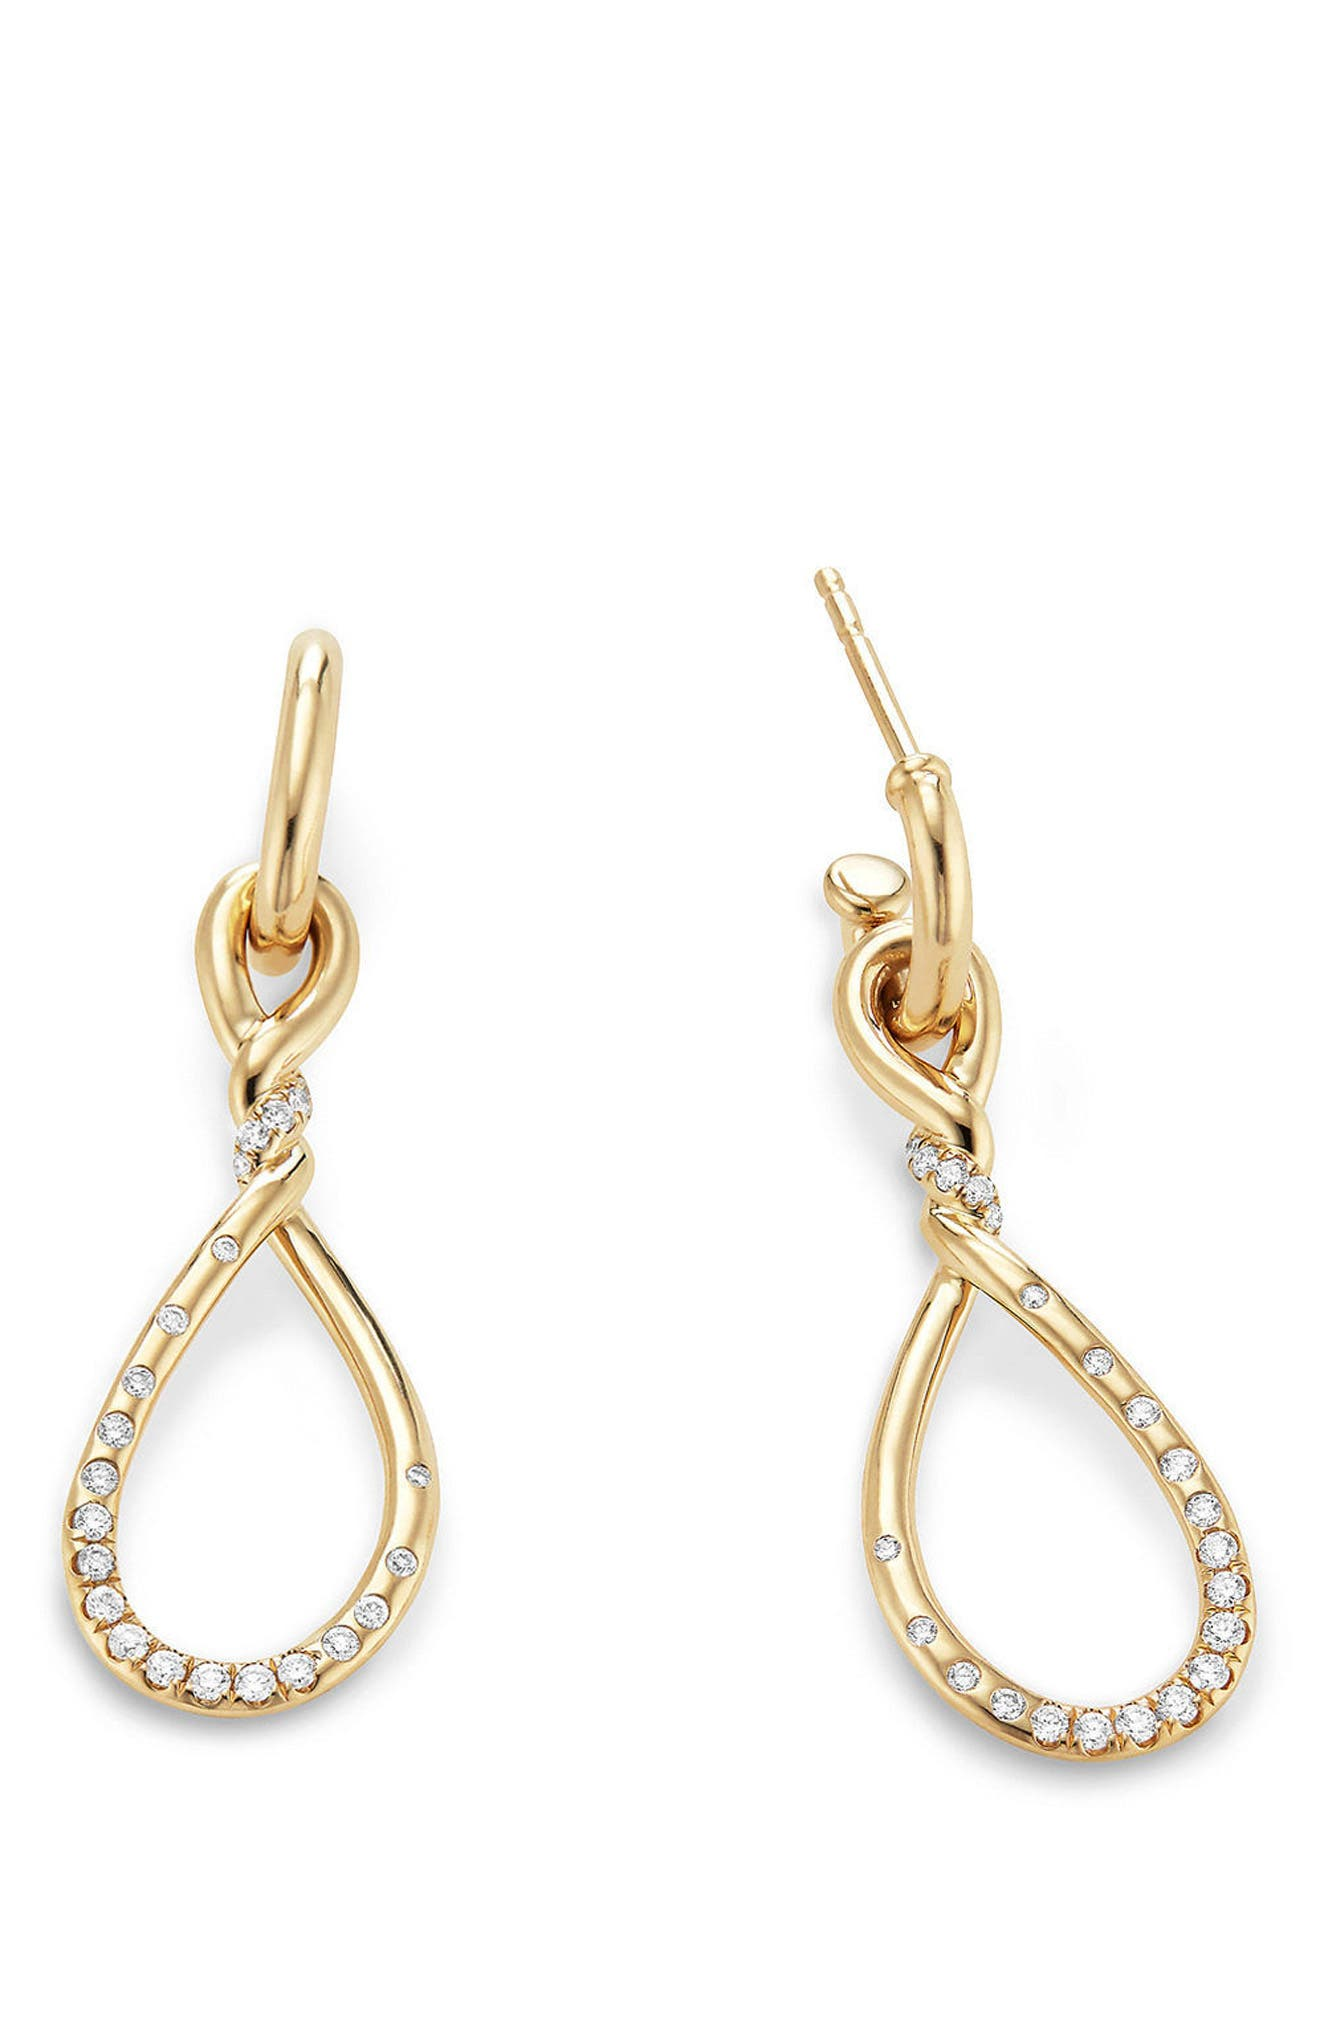 Continuance Medium Drop Earrings with Diamonds in 18K Gold,                             Alternate thumbnail 2, color,                             Yellow Gold